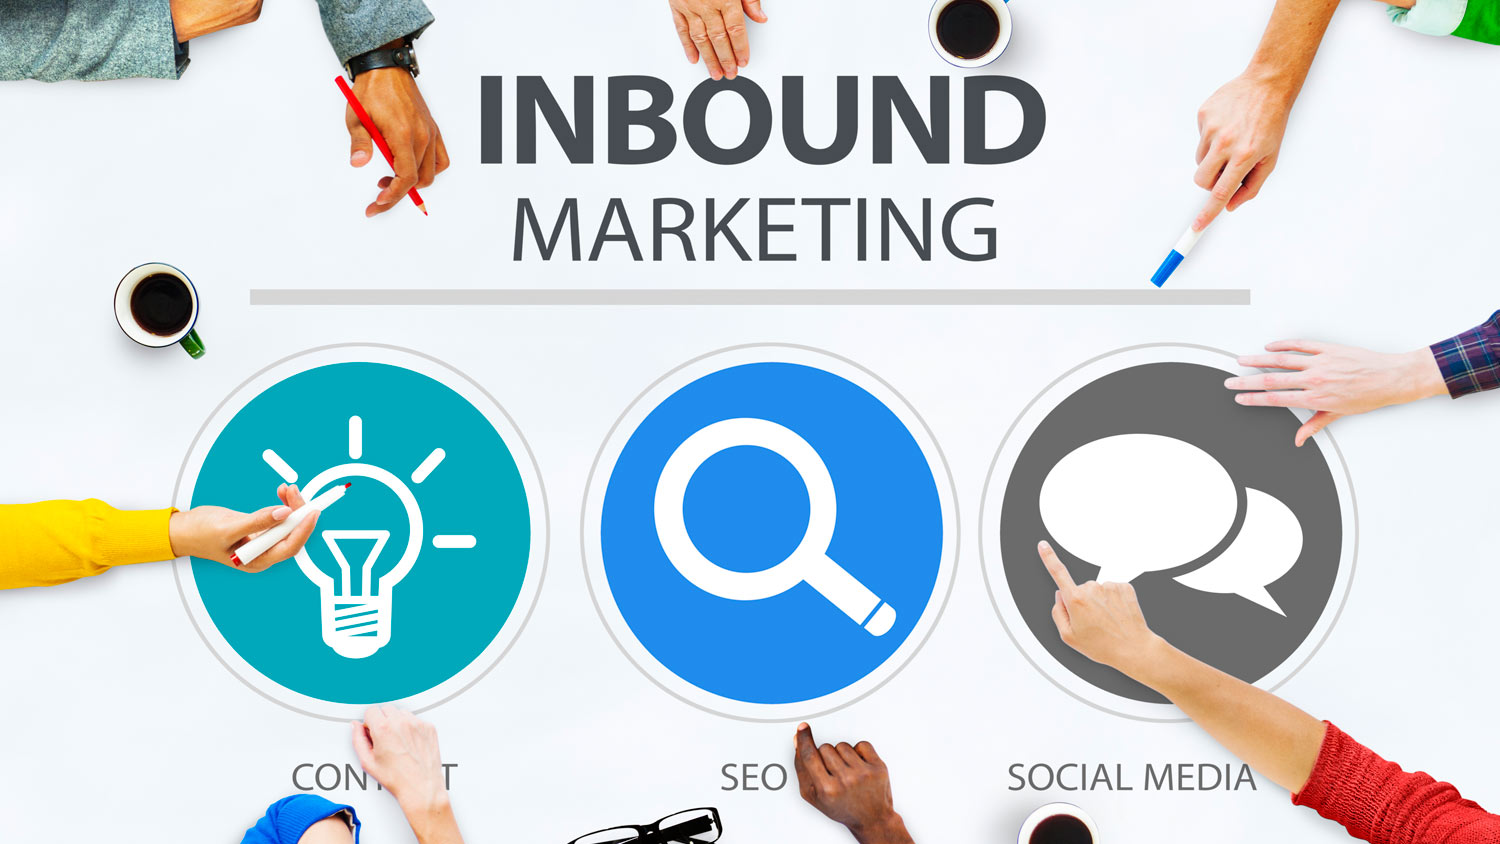 The first and most important thing you need consider while creating a successful inbound marketing plan